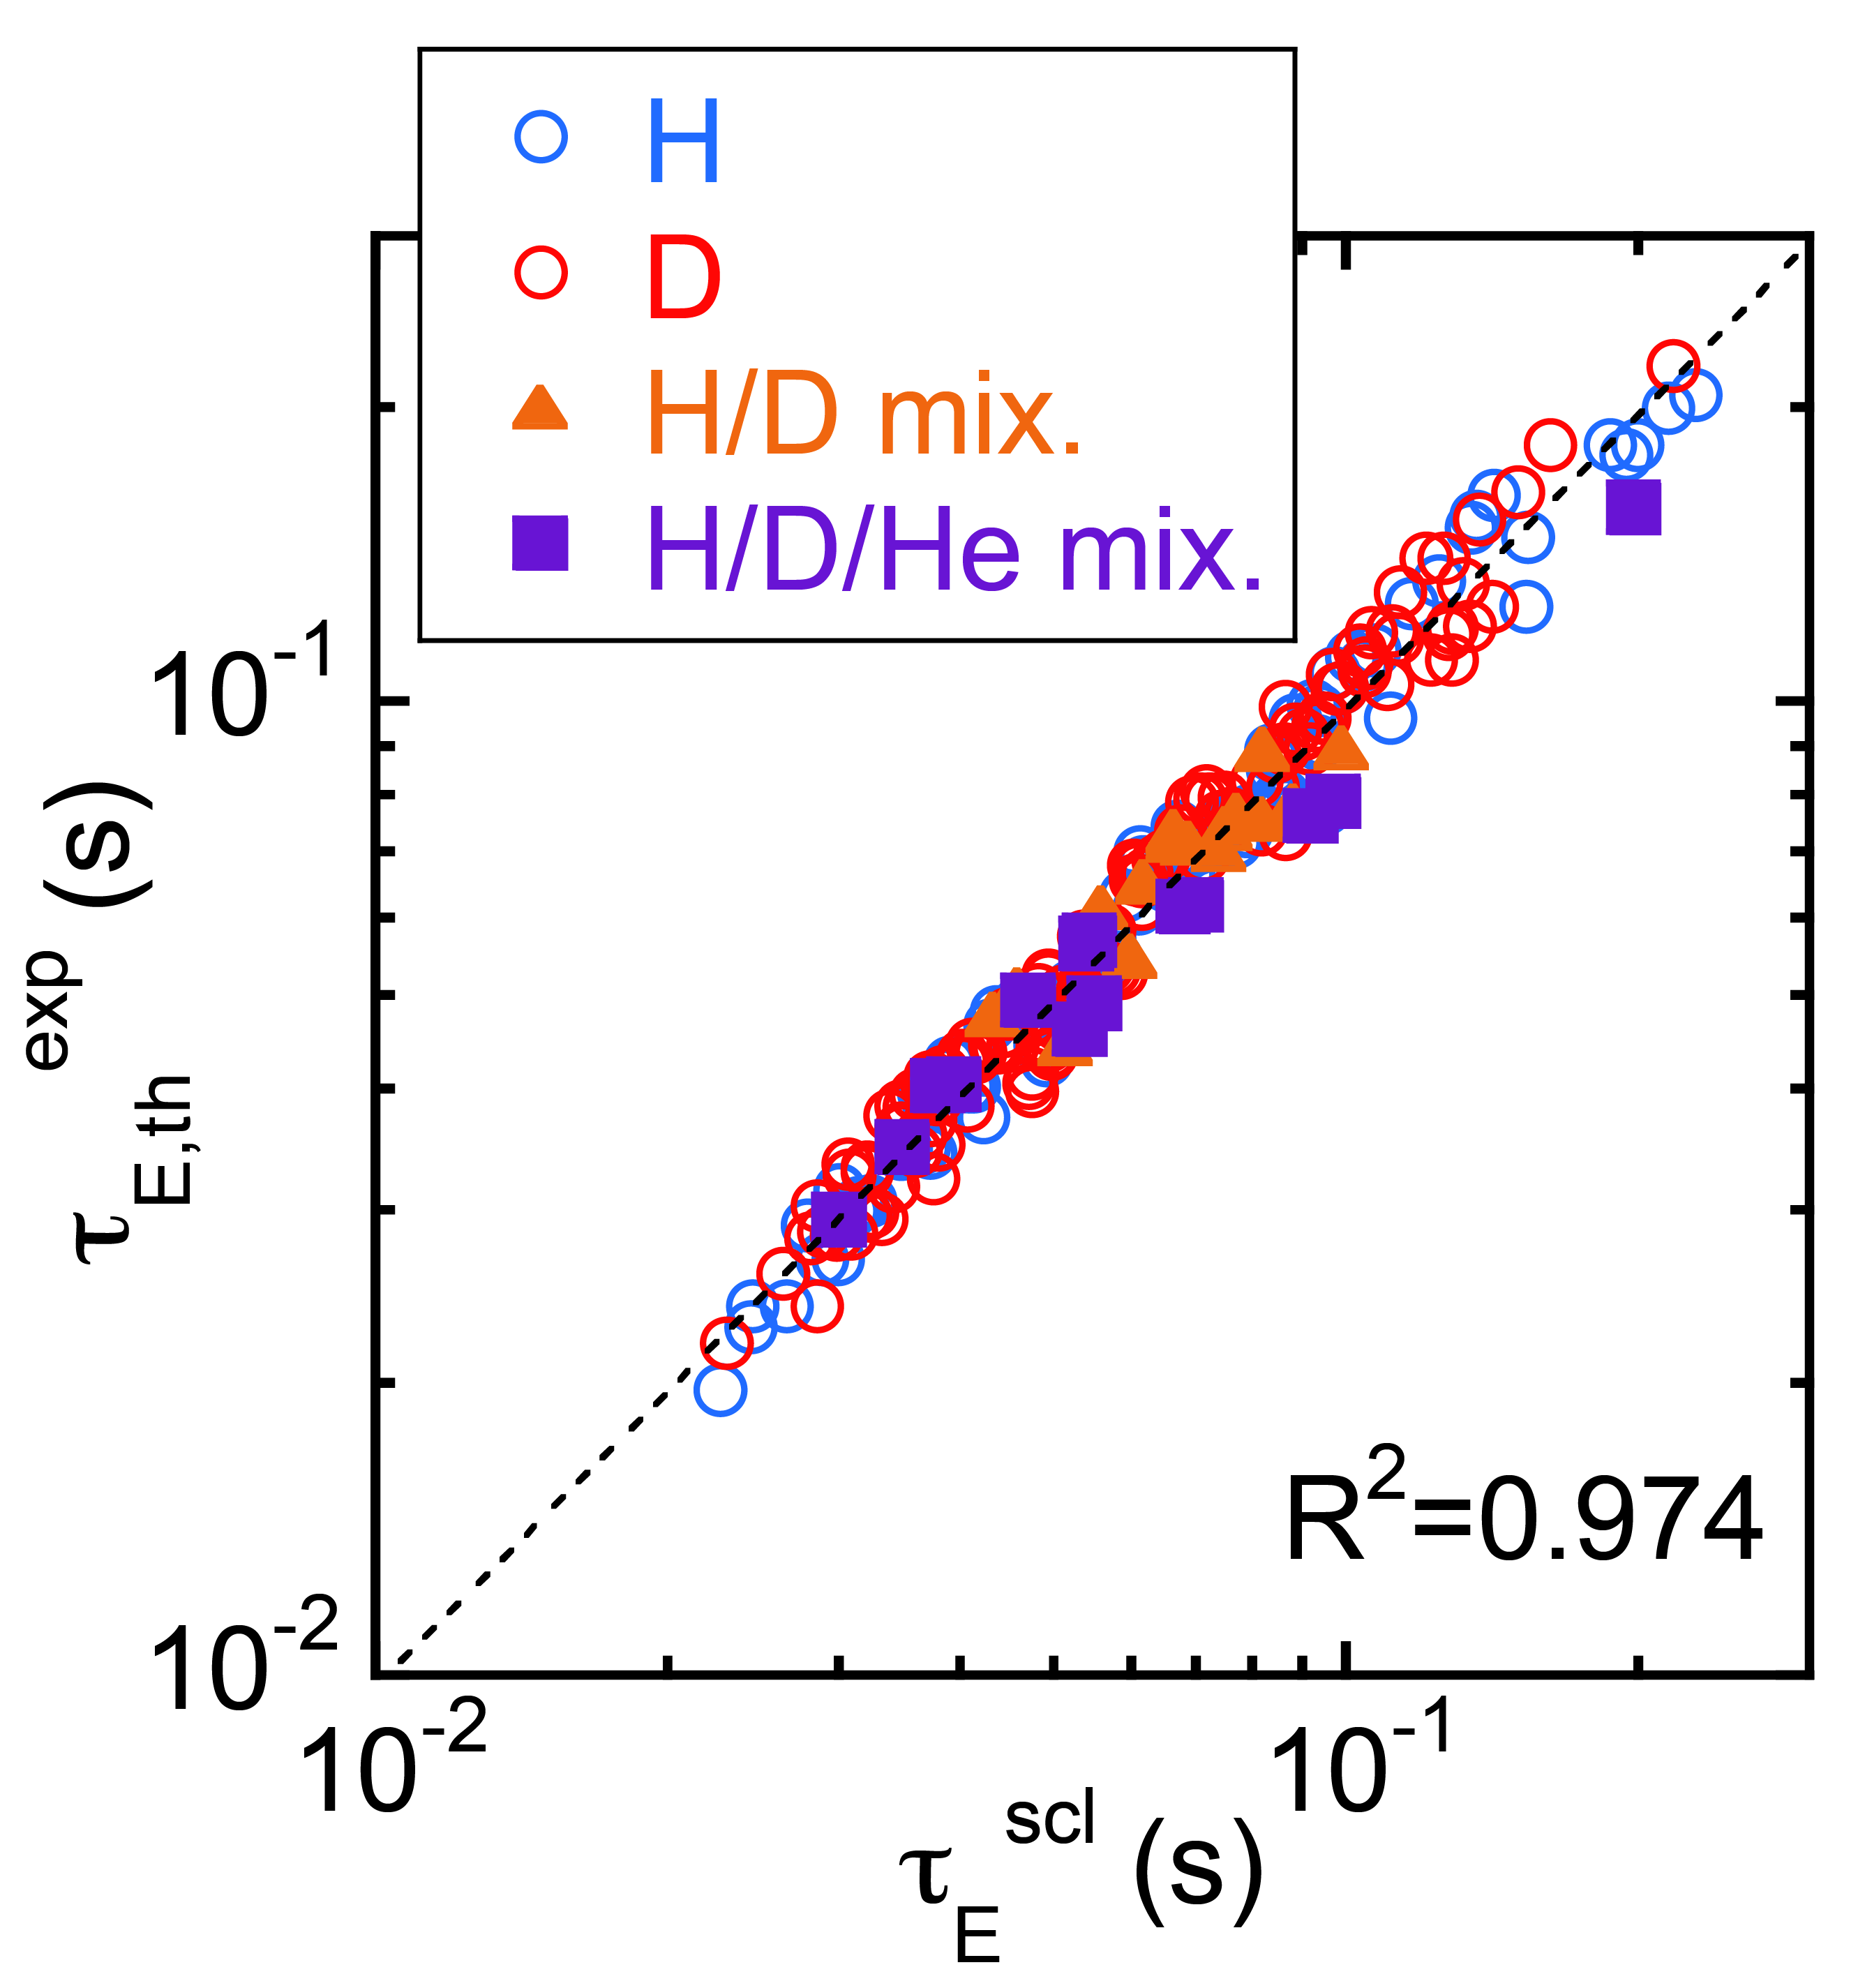 Comparison of thermal transport in H and D plasmas over the dimensionally scan. (a) The thermal diffusivity at $\rho$ (=$r_{eff}/a$)=2/3 normalized by the corresponding surface area $S_{2/3}$ and $\Omega_i$ as a function of $\nu_*$. (b) The ratio of electron heat flux to ion heat flux.